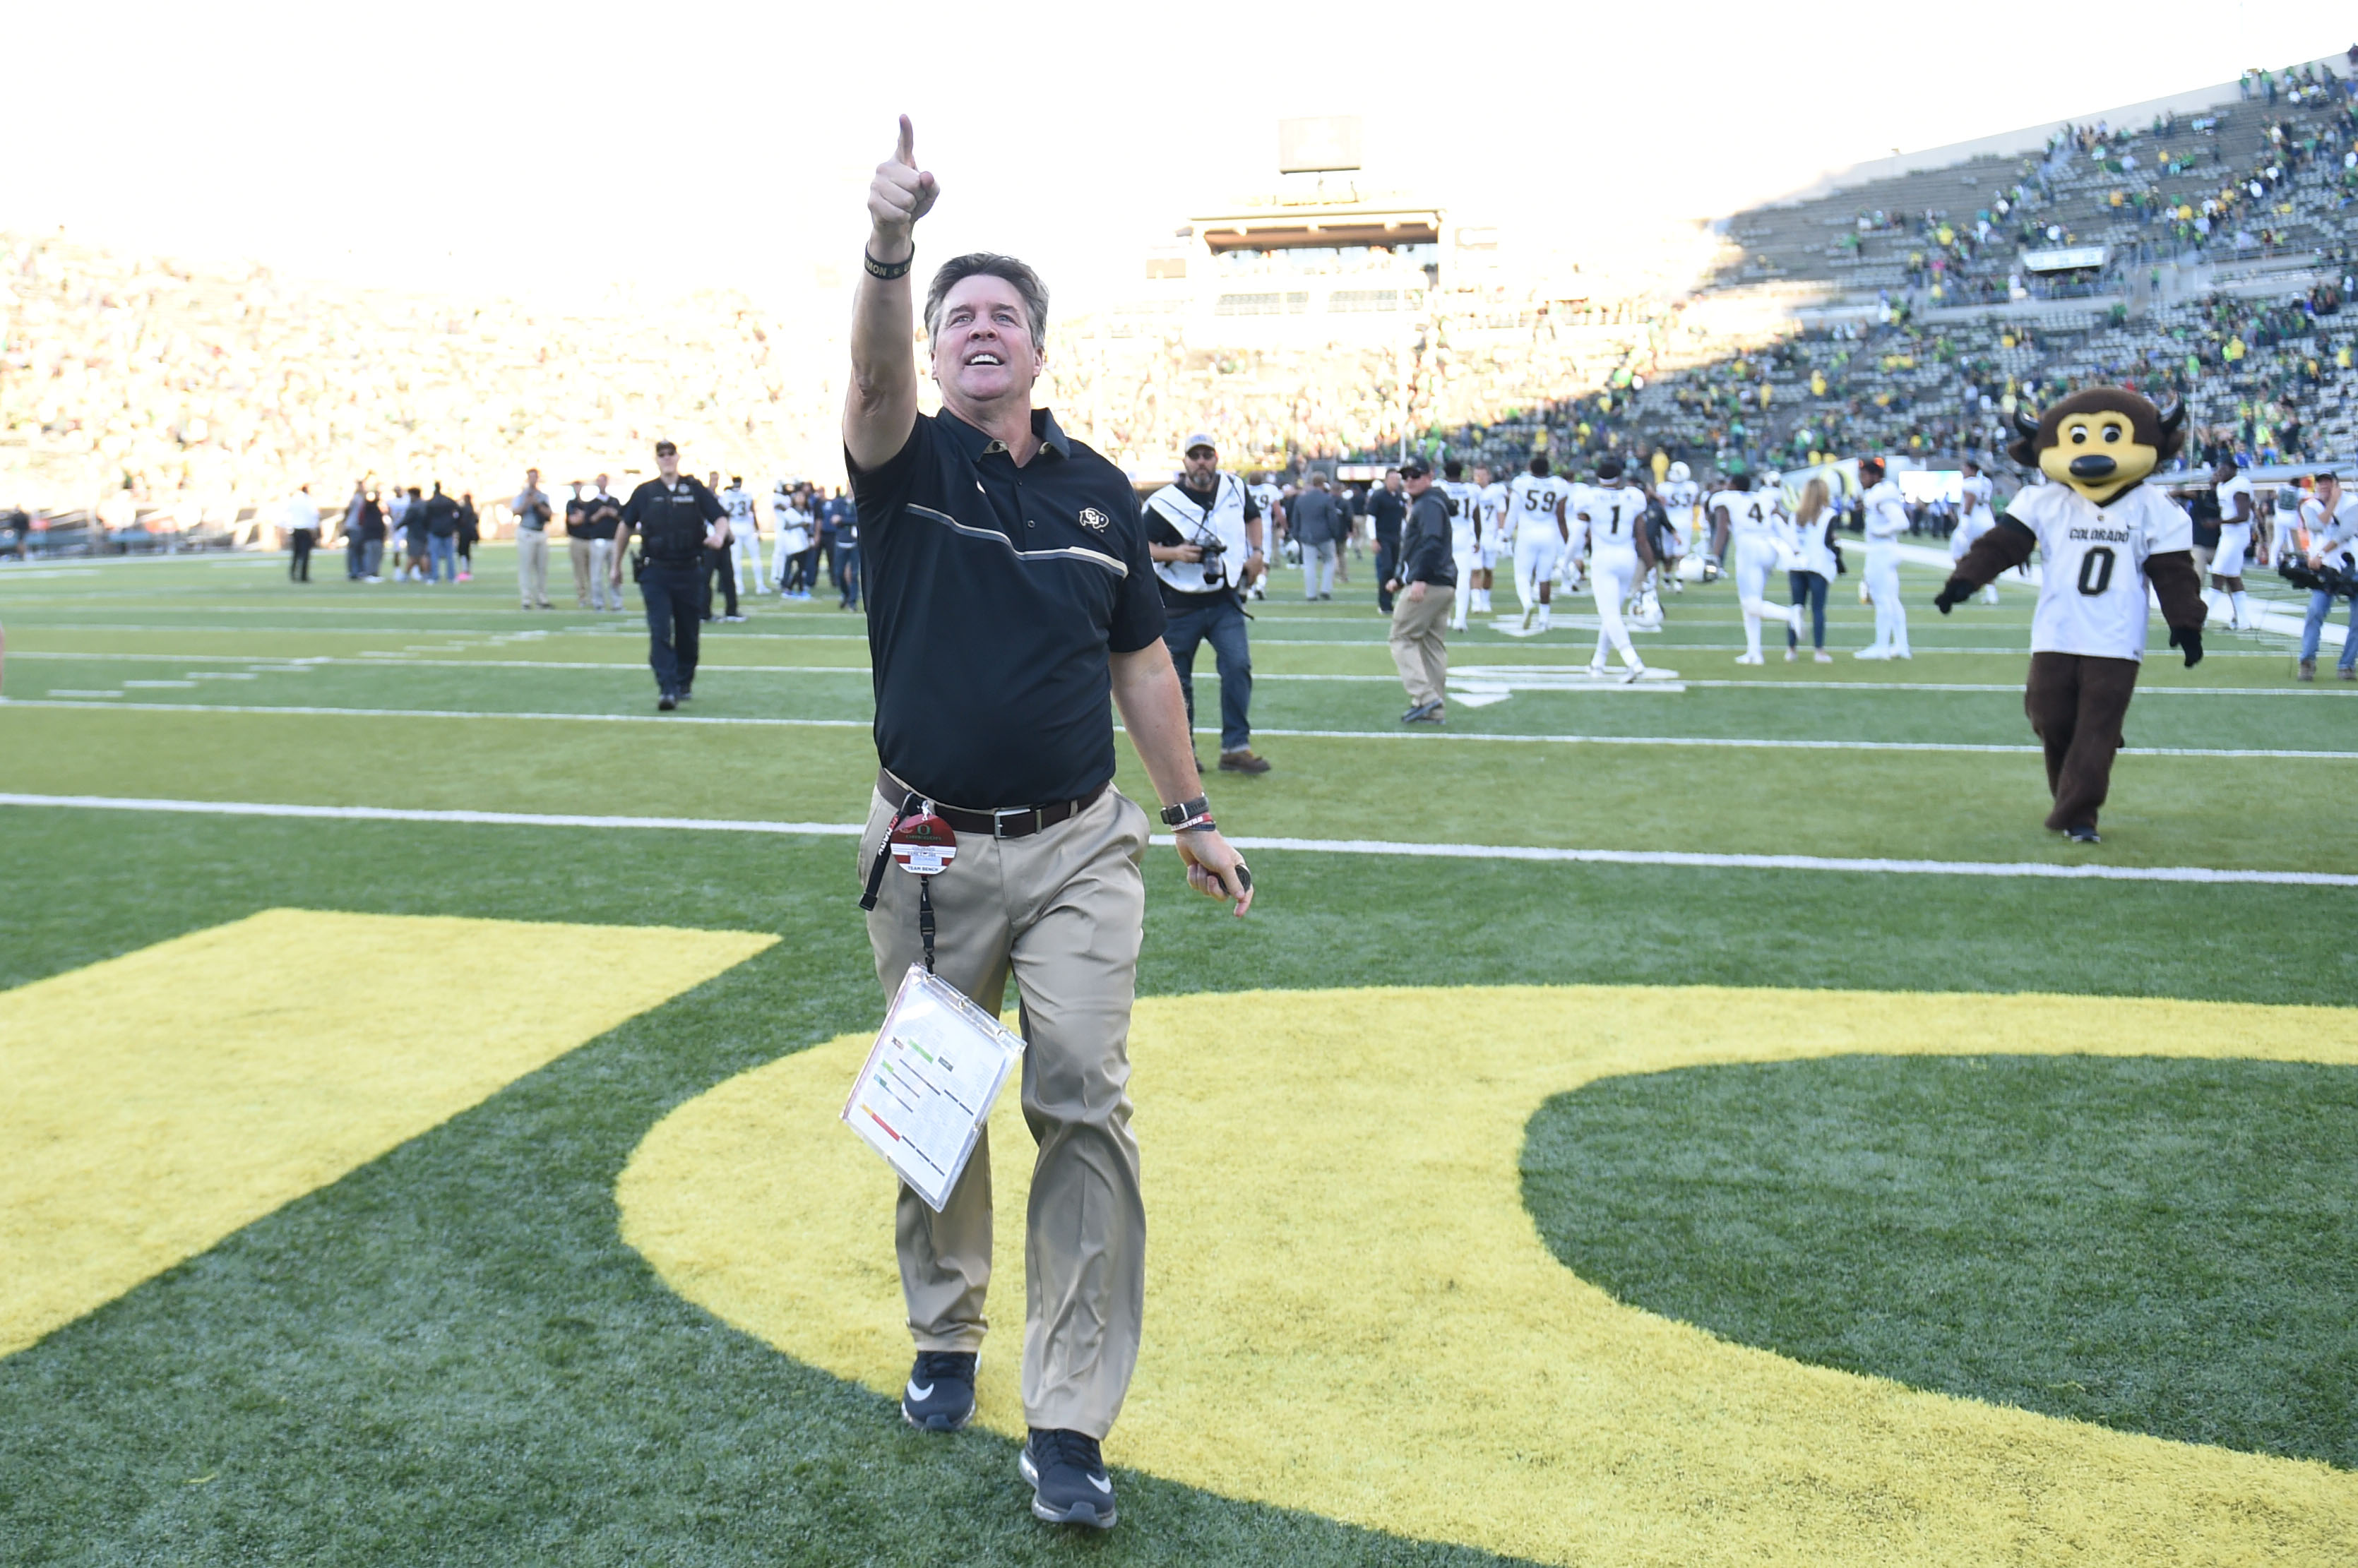 Head coach Mike MacIntyre of the Colorado Buffaloes celebrates after the game against the Oregon Ducks at Autzen Stadium on September 24, 2016 in Eugene, Oregon. Colorado won the game 41-38. (Photo by Steve Dykes/Getty Images)